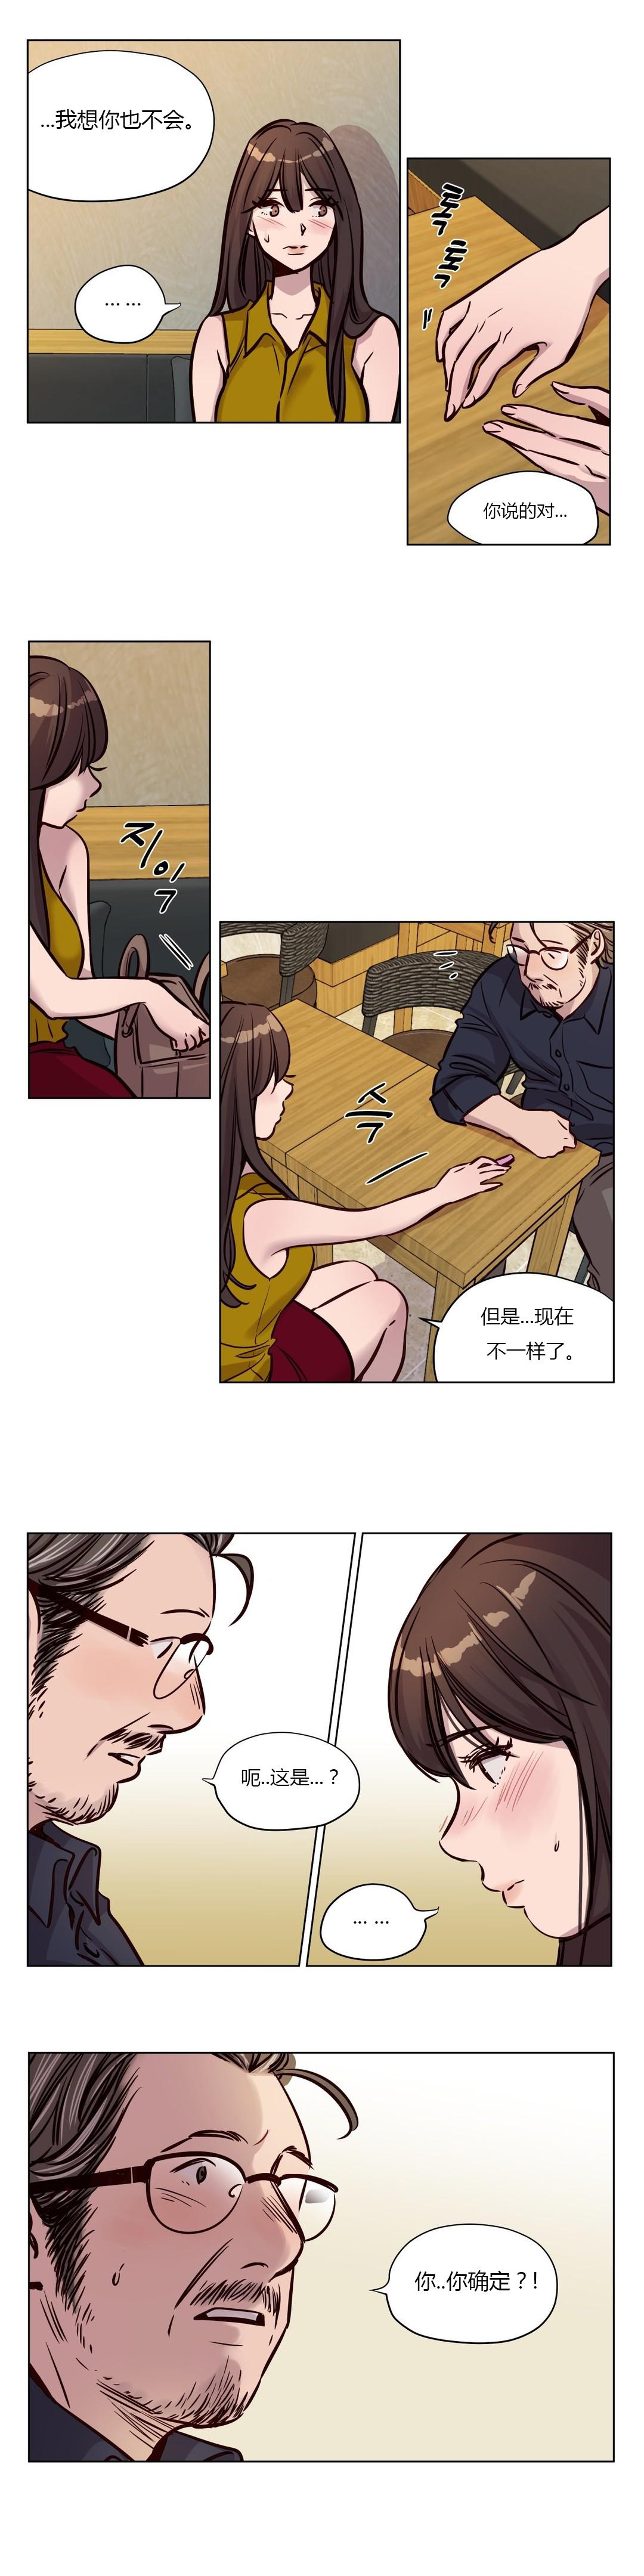 Atonement Camp Ch.0-53 615